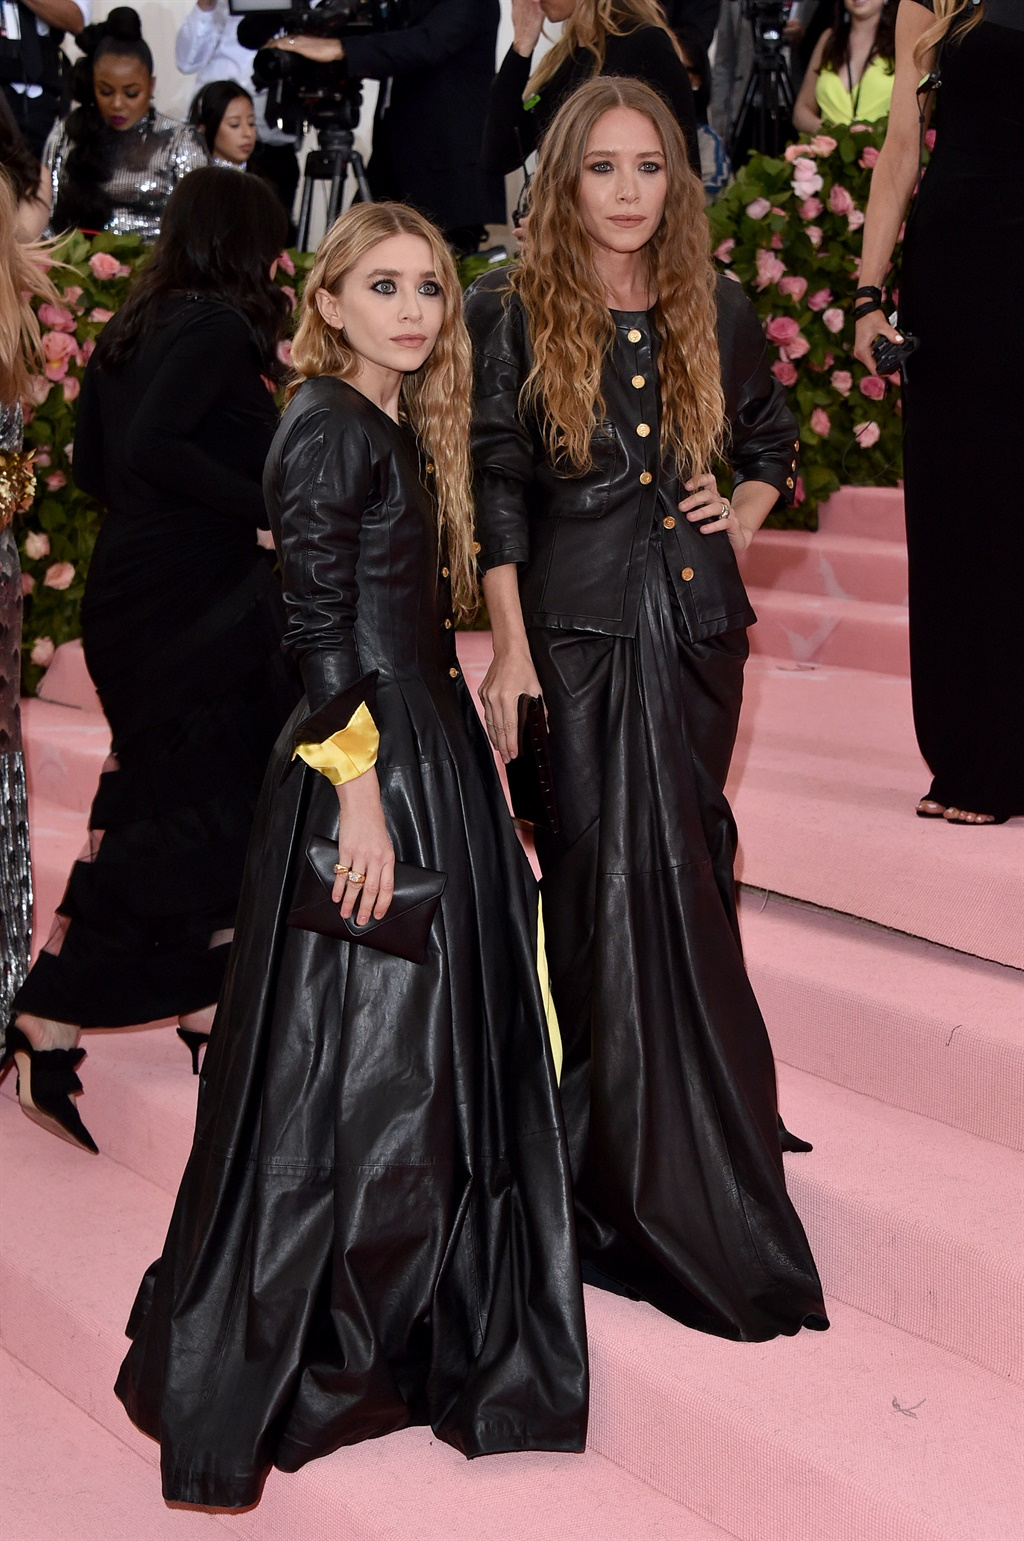 NEW YORK, NEW YORK - MAY 06: Mary-Kate Olsen and A